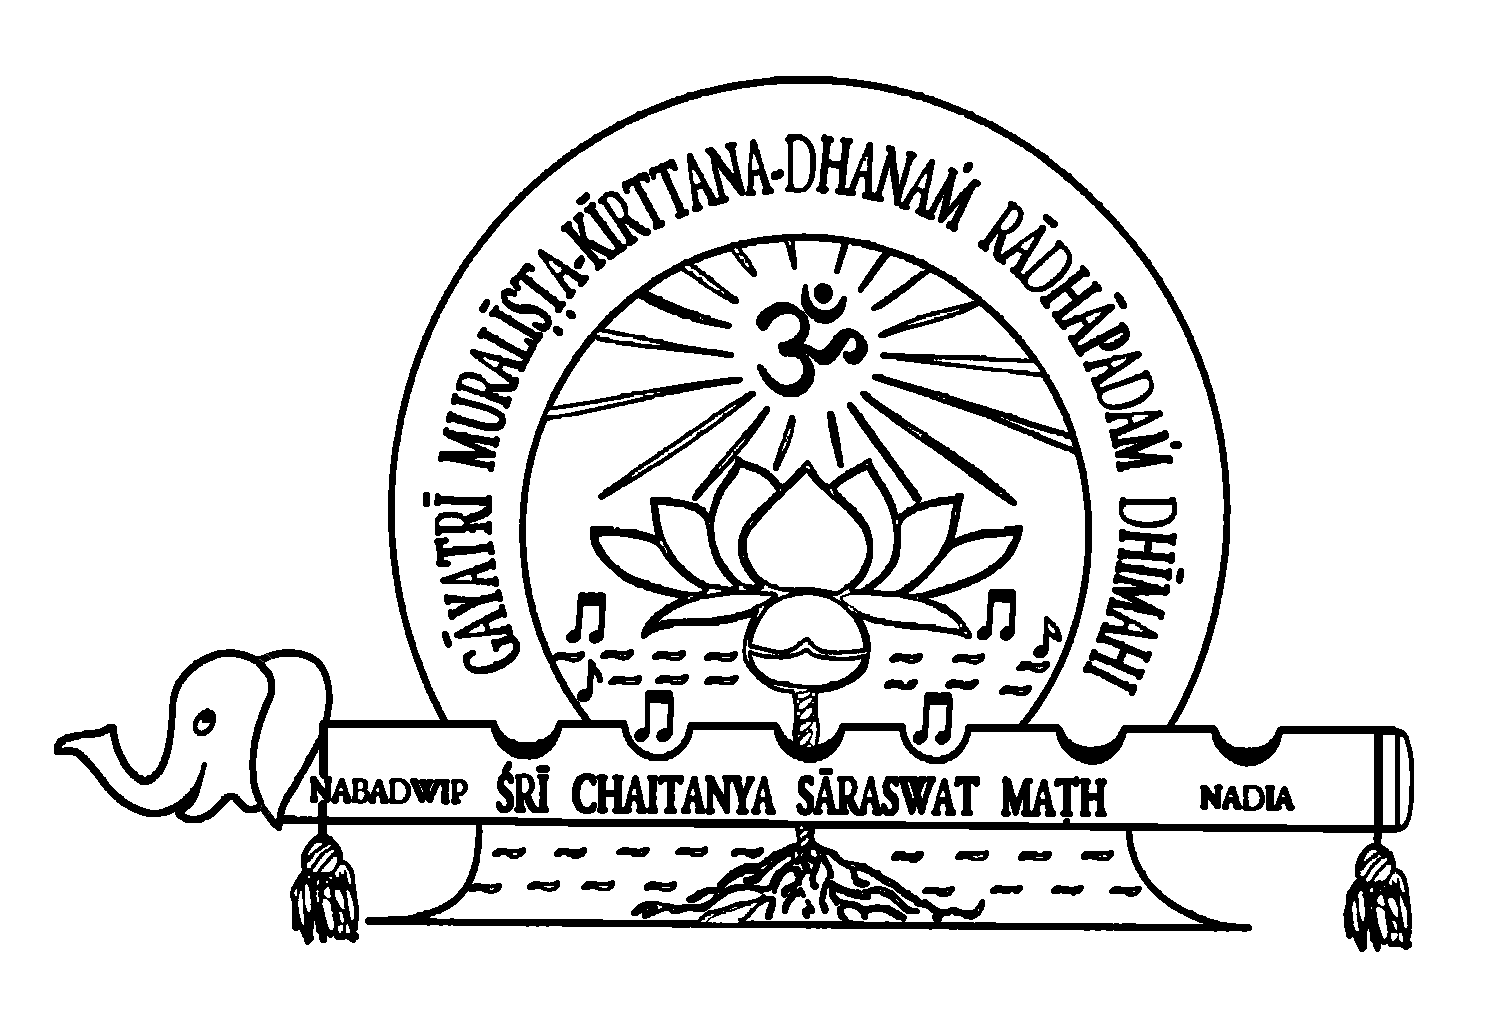 Sri Chaitanya Saraswat Math